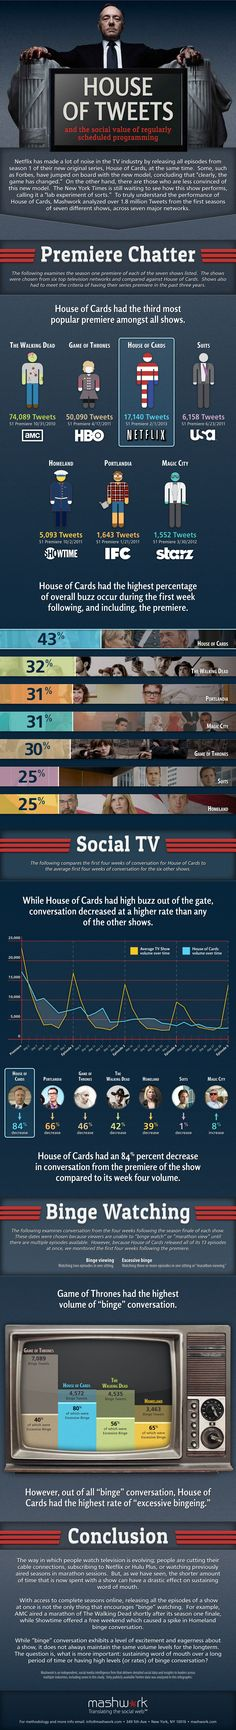 Netflix released the entire first season of its original series House of Cards, so how does that affect overall buzz?